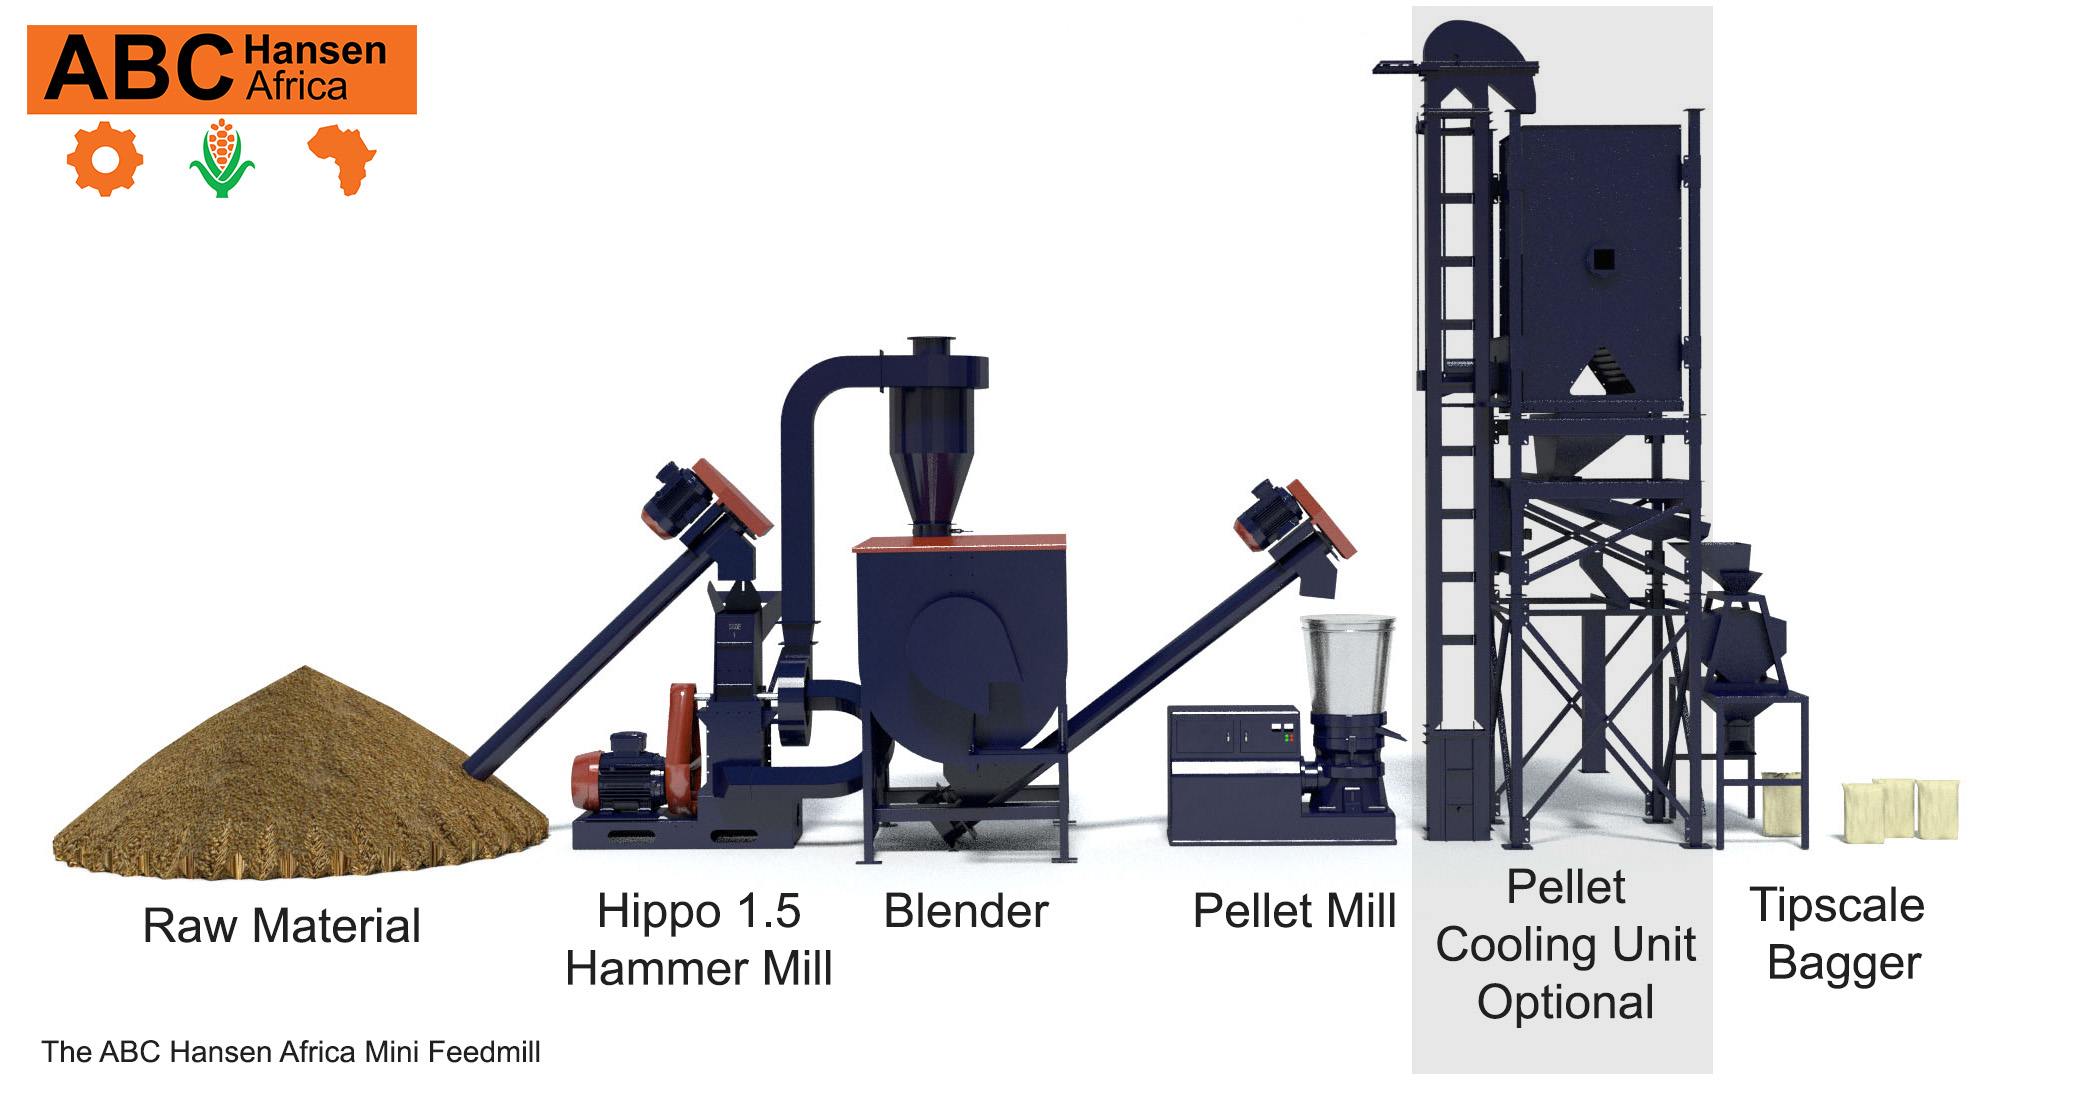 Feedmills by ABC Hansen Africa